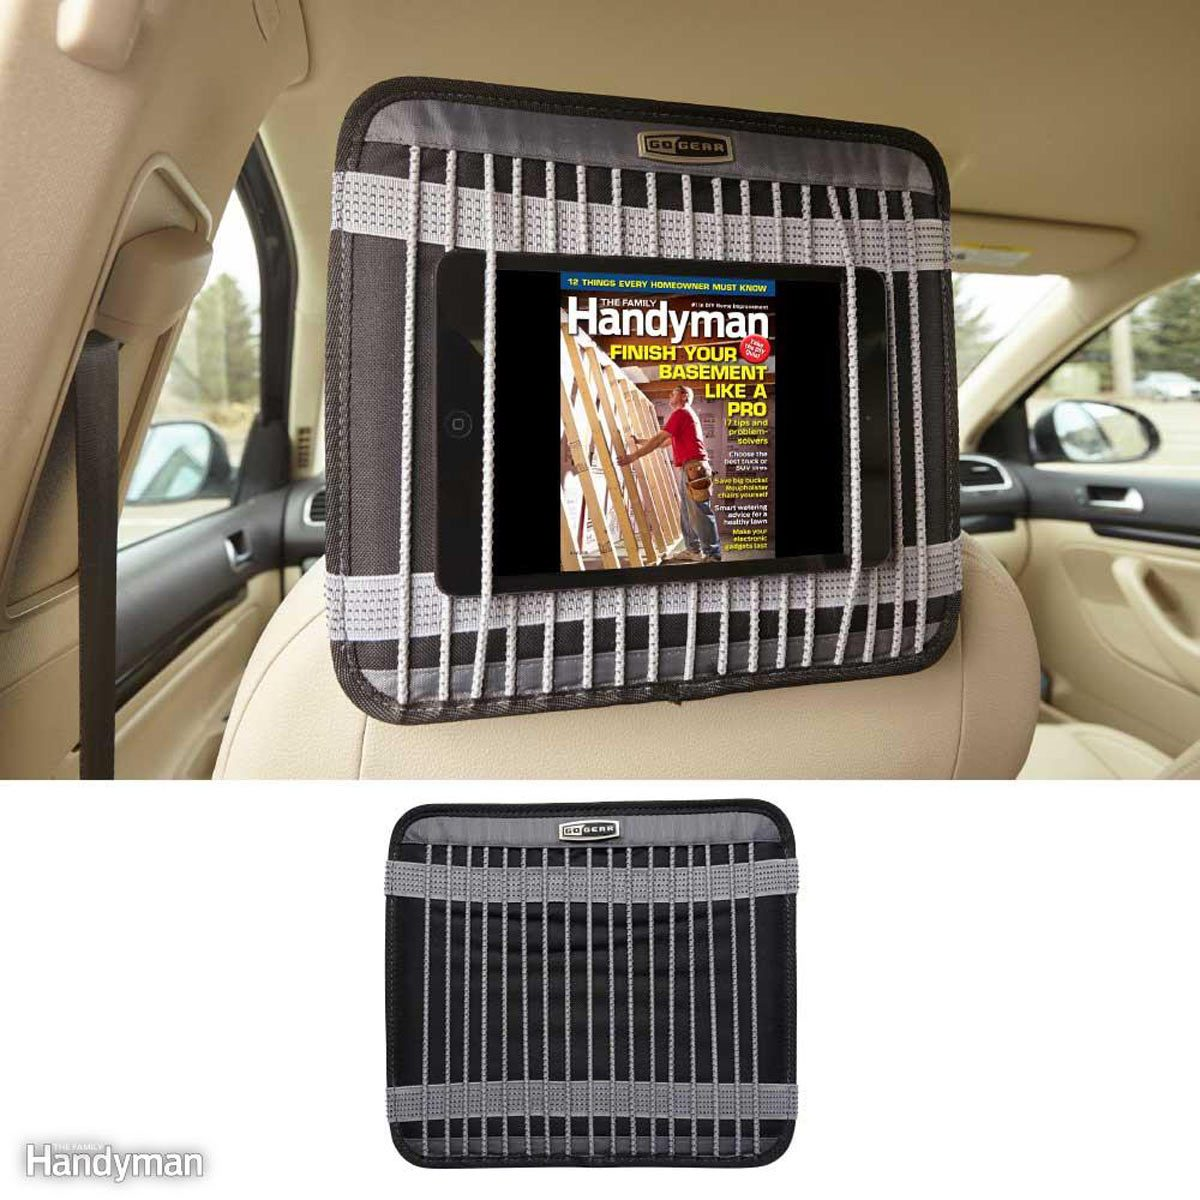 Hands-Free Tablets and Phones: GoGear Automotive Universal Tablet Holder